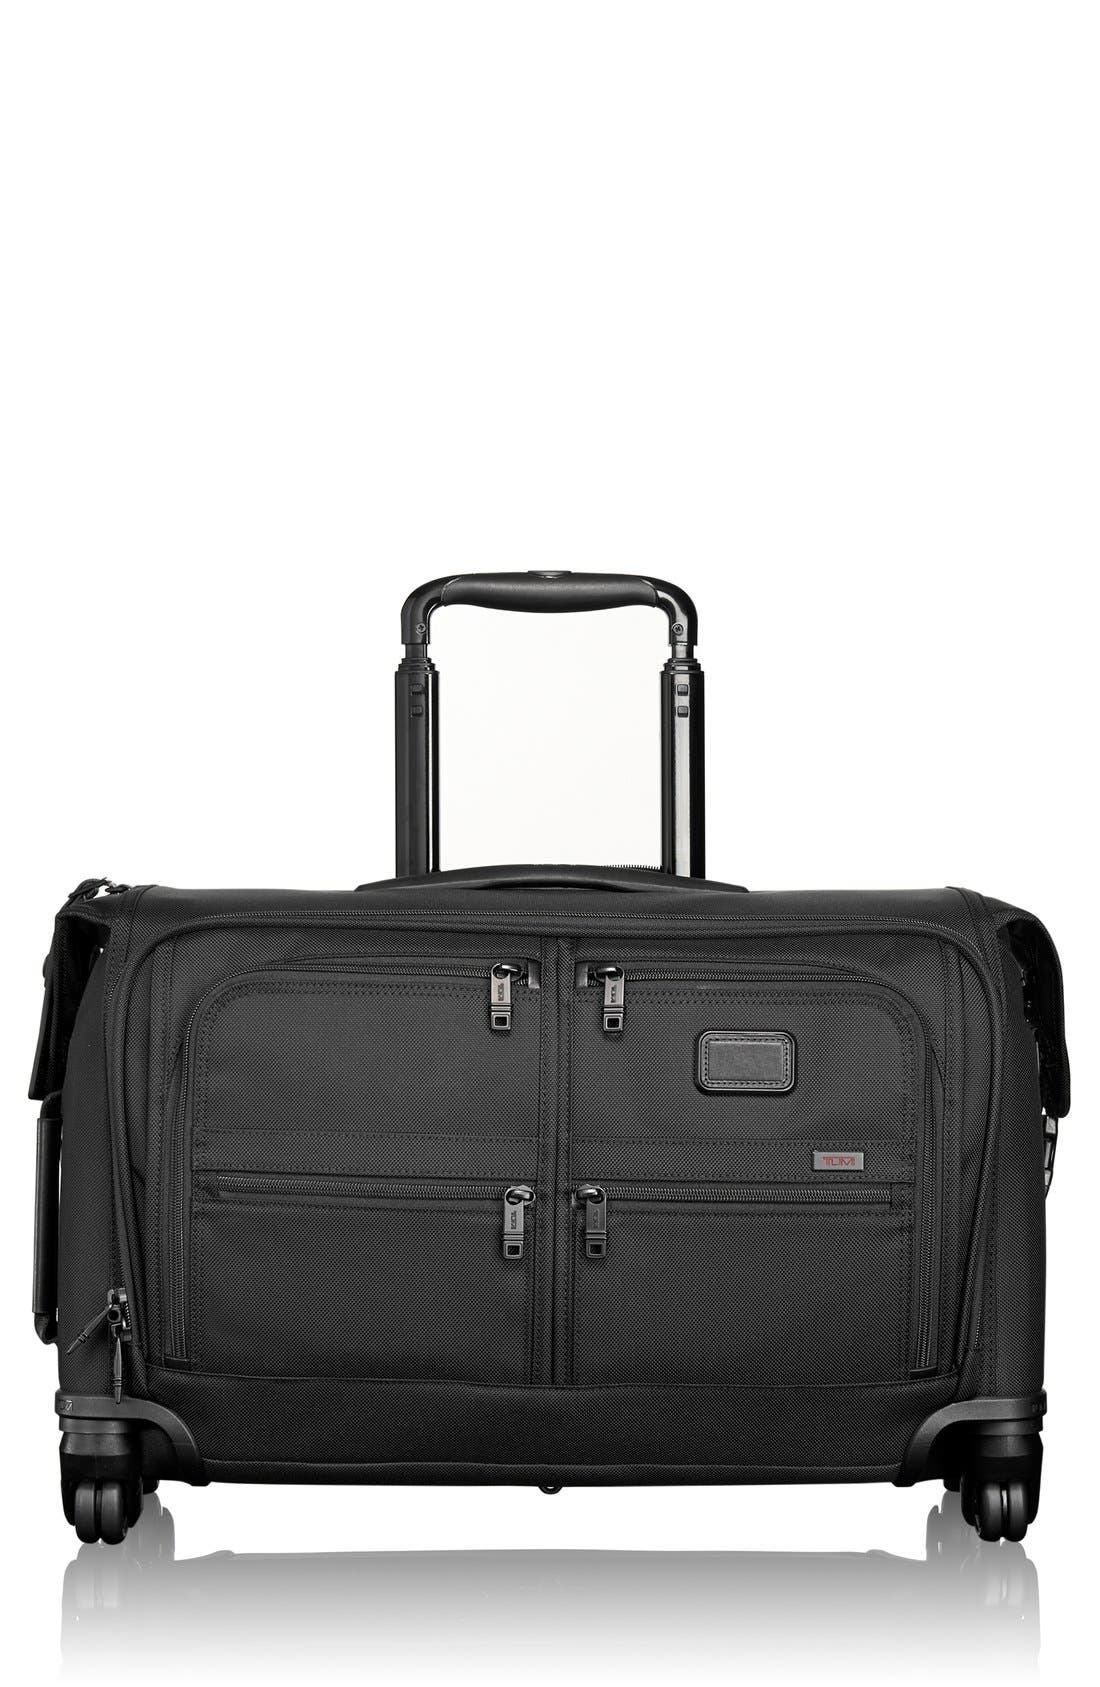 Tumi 'Alpha 2' Wheeled Carry-On Garment Bag (22 Inch)